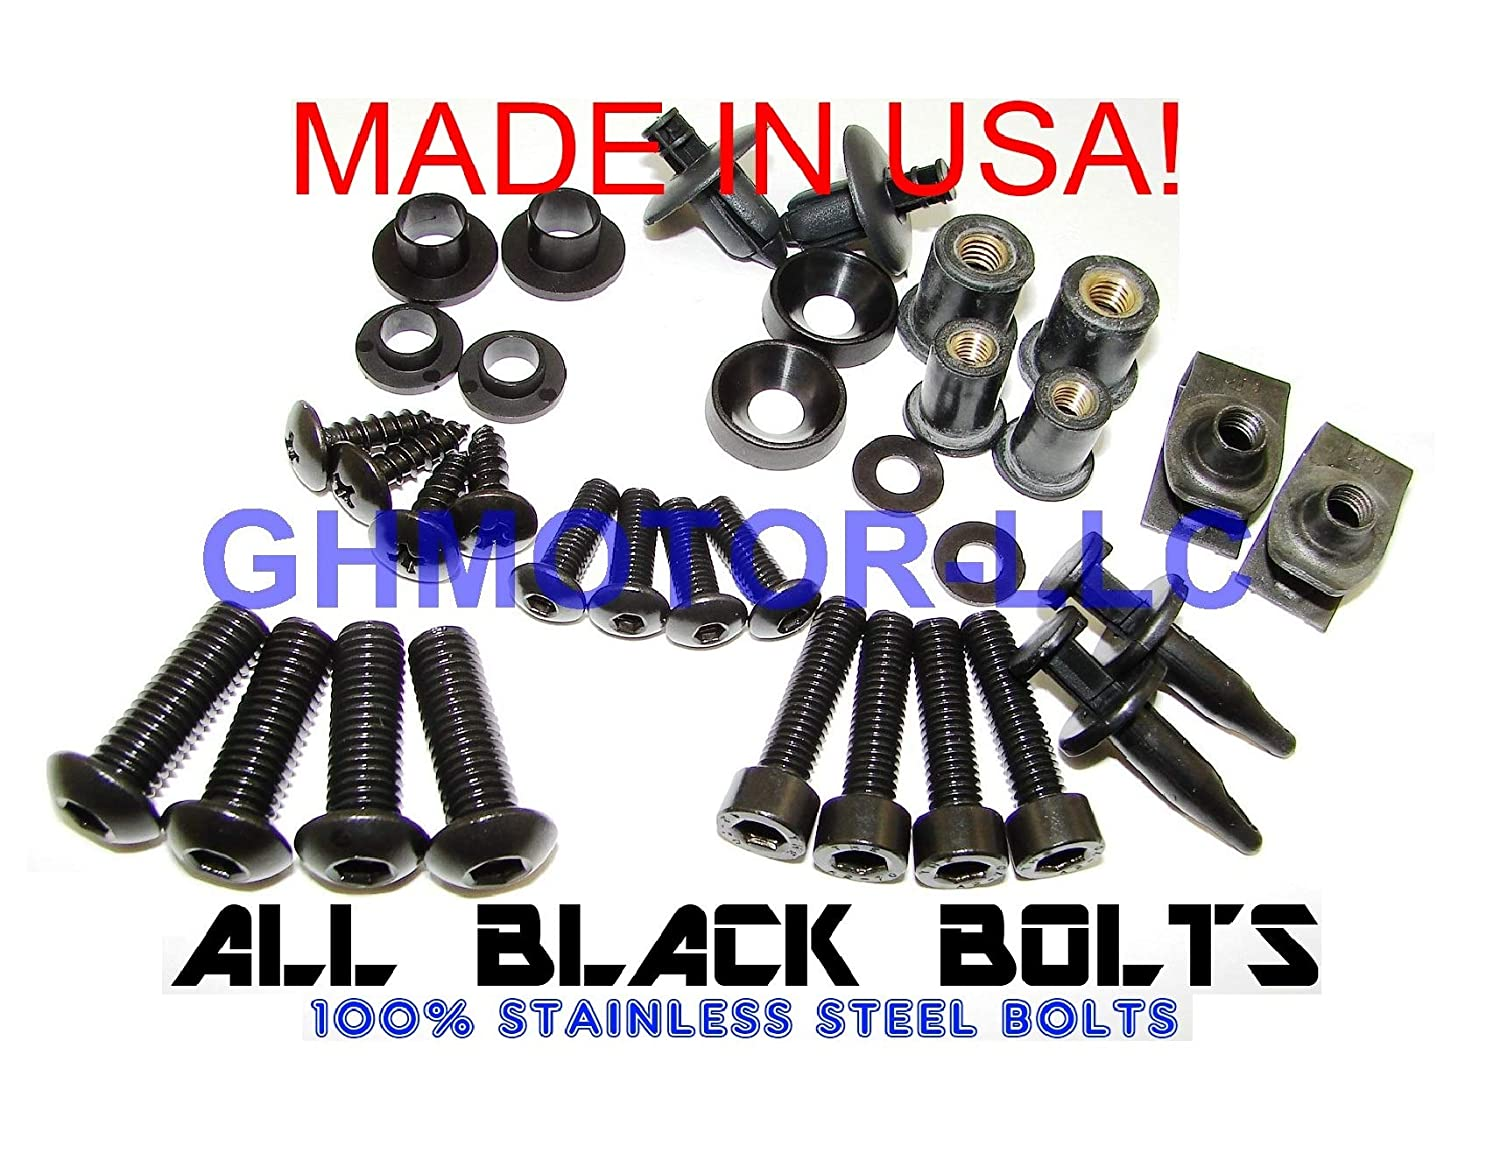 GHMotor Complete Fairings Bolts Screws Fasteners Kit Set Made in USA for 1994 1995 1996 1997 KAWASAKI ZX9R ZX-9R Black